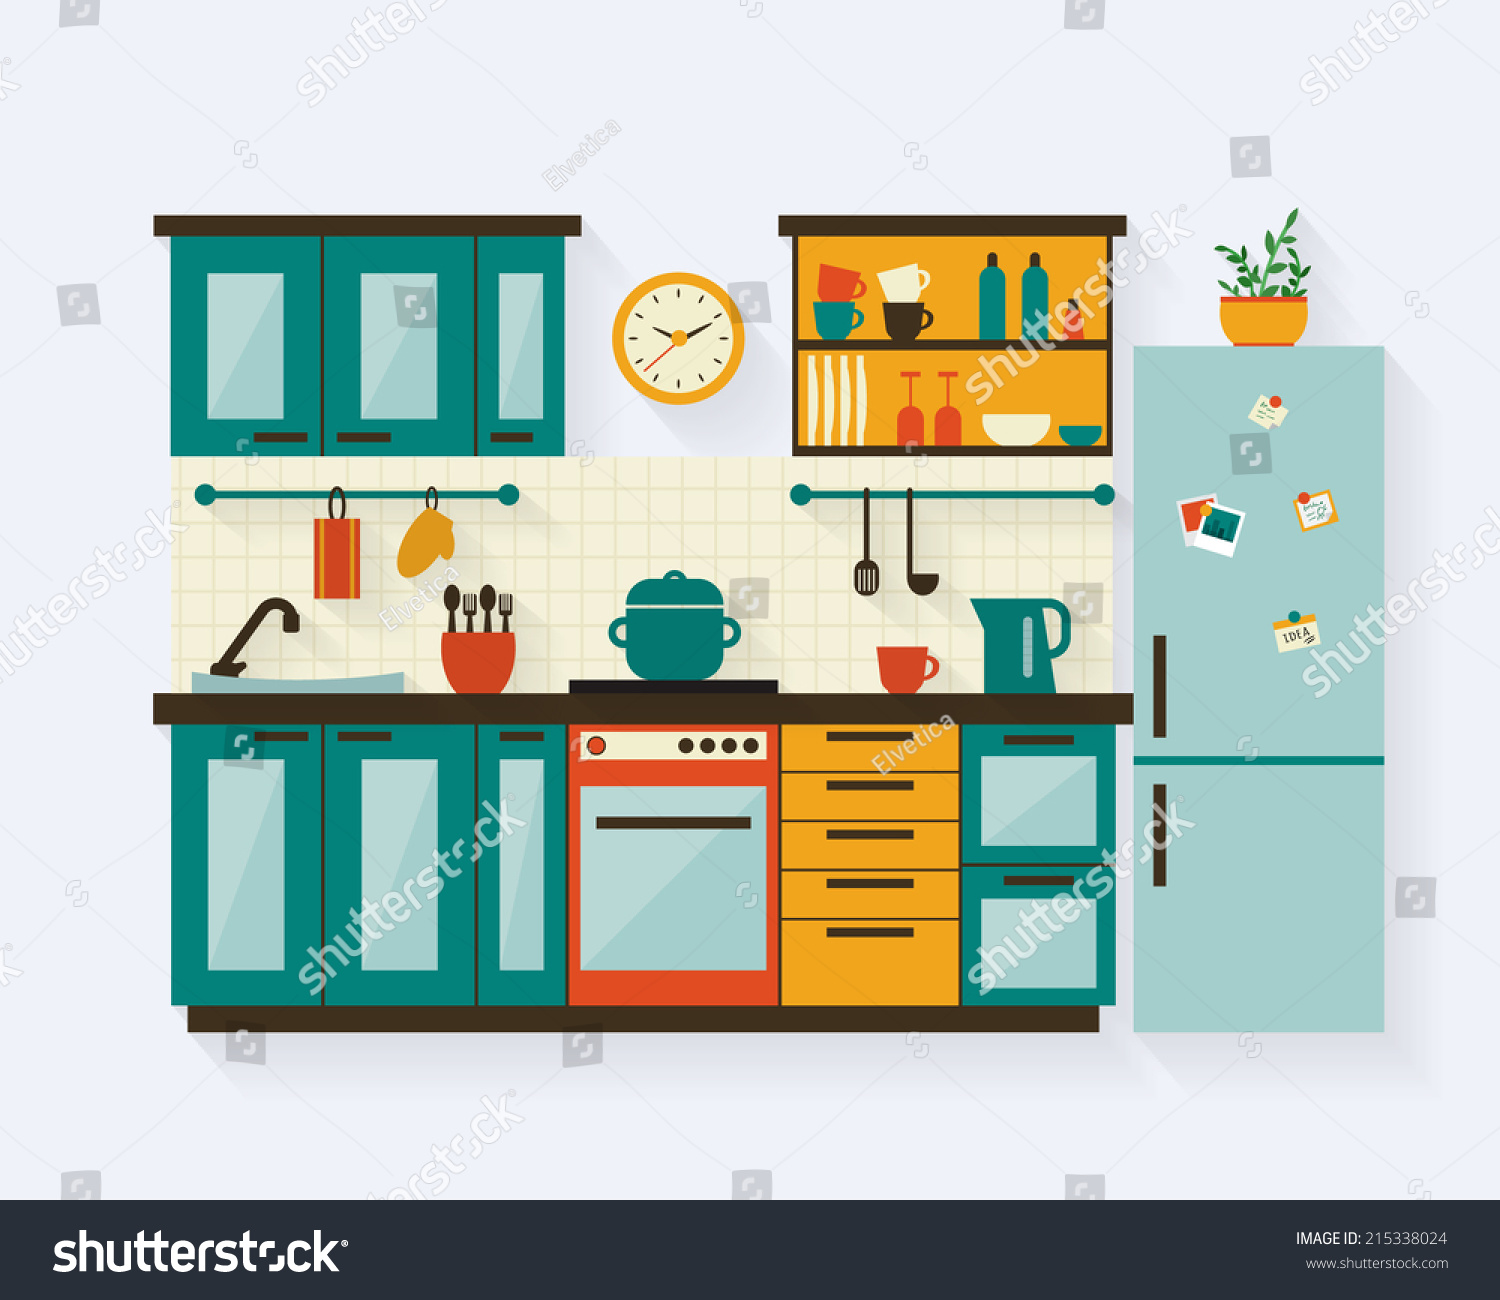 Kitchen Room Furniture Clipart: Kitchen With Furniture And Long Shadows. Flat Style Vector